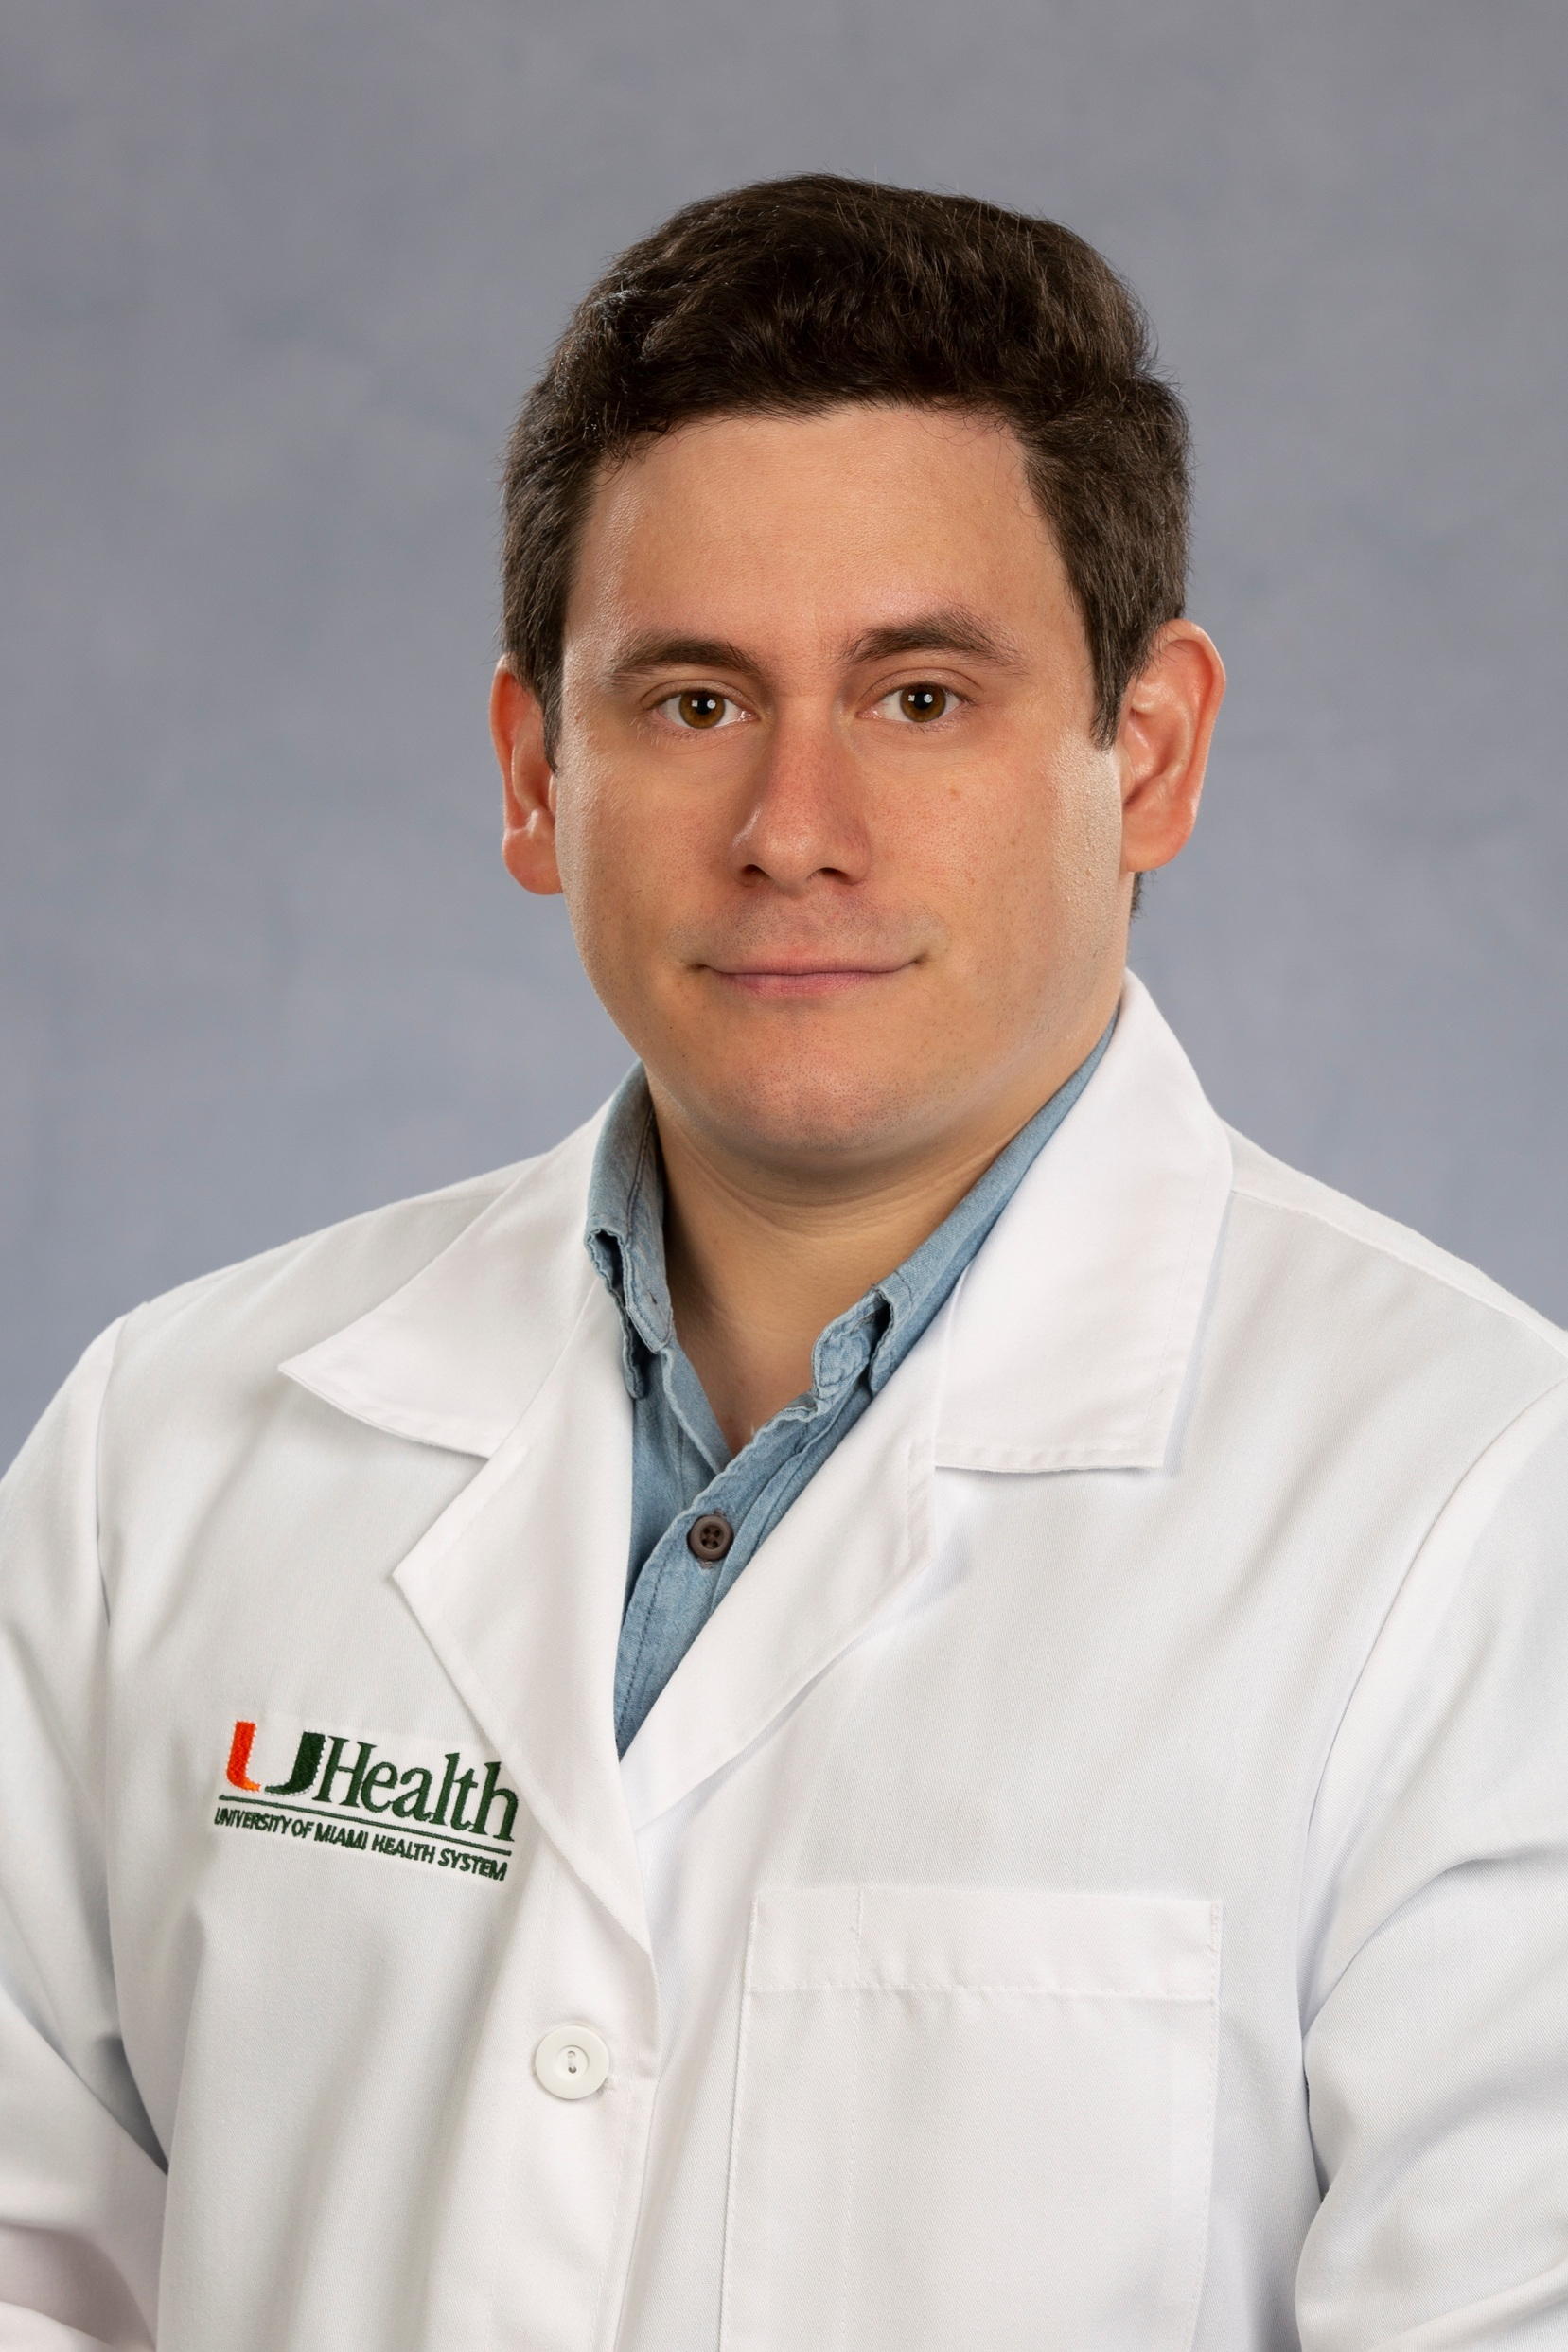 UNIVERSITY OF MIAMI ENDOCRINOLOGY FELLOWSHIP